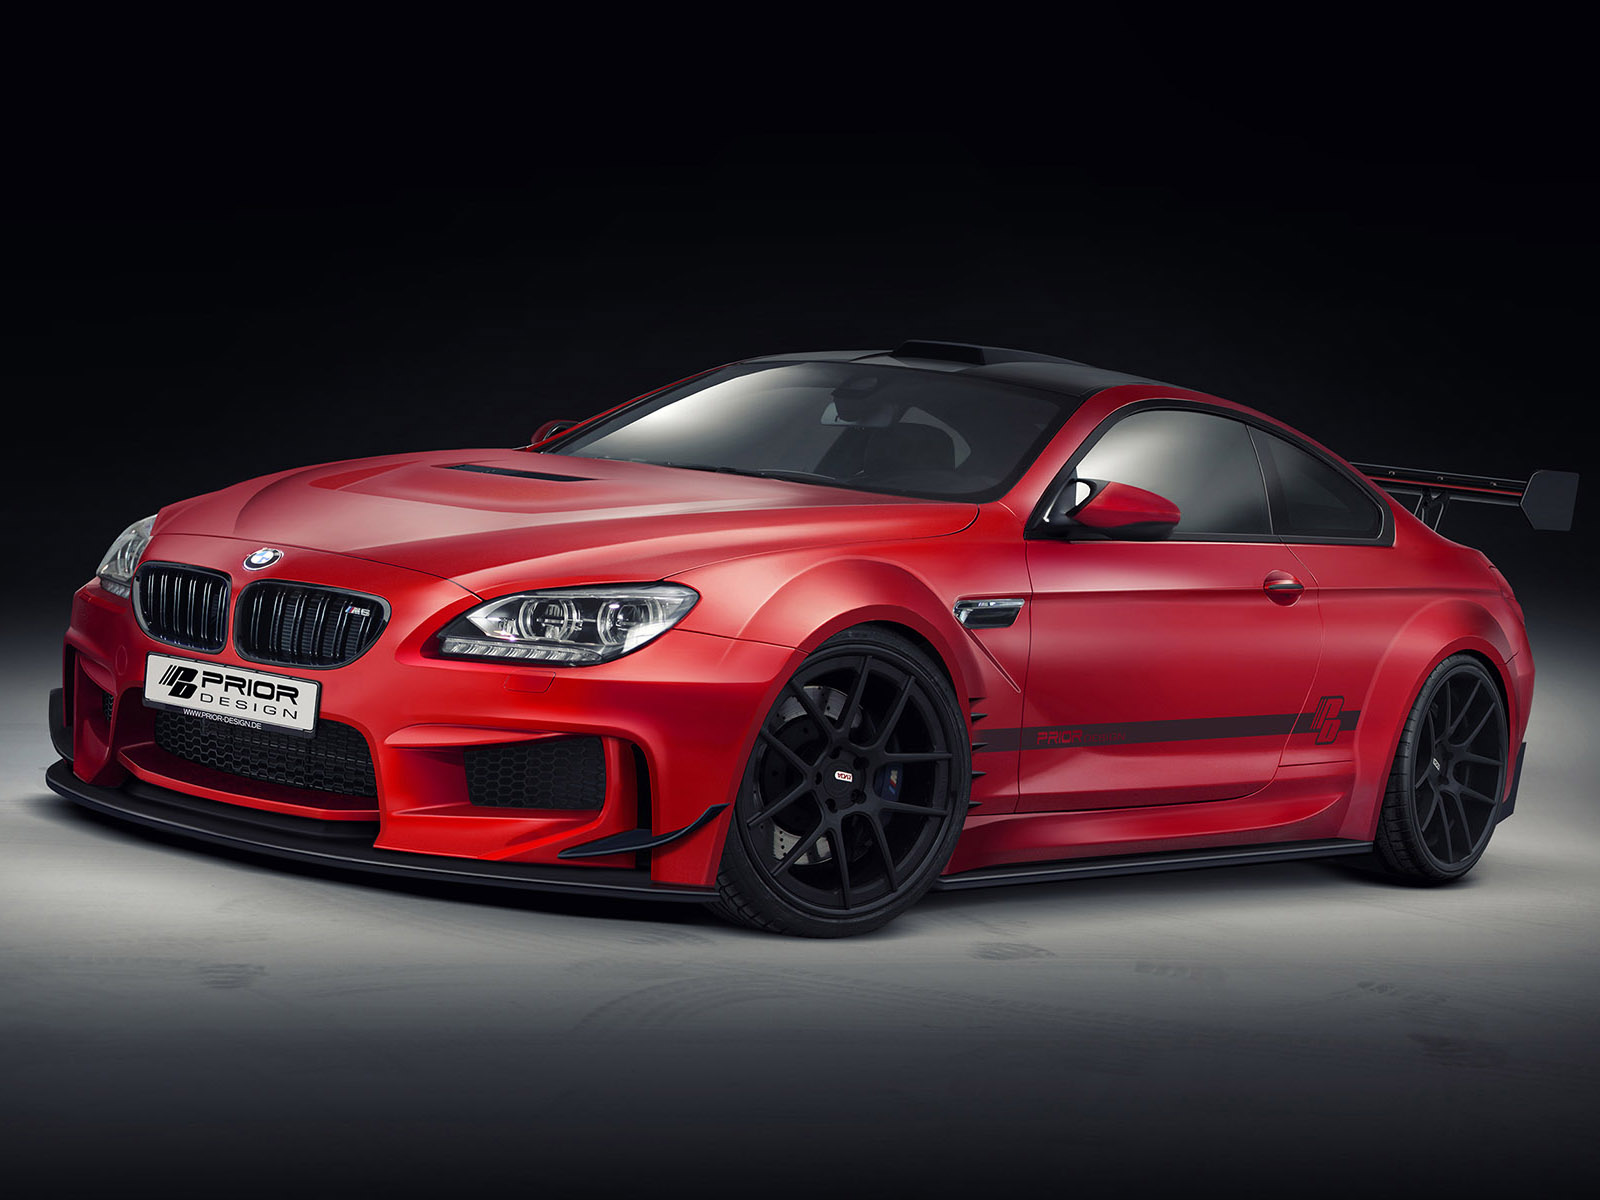 2013 prior design bmw m6 f12 tuning m 6 wallpaper. Black Bedroom Furniture Sets. Home Design Ideas